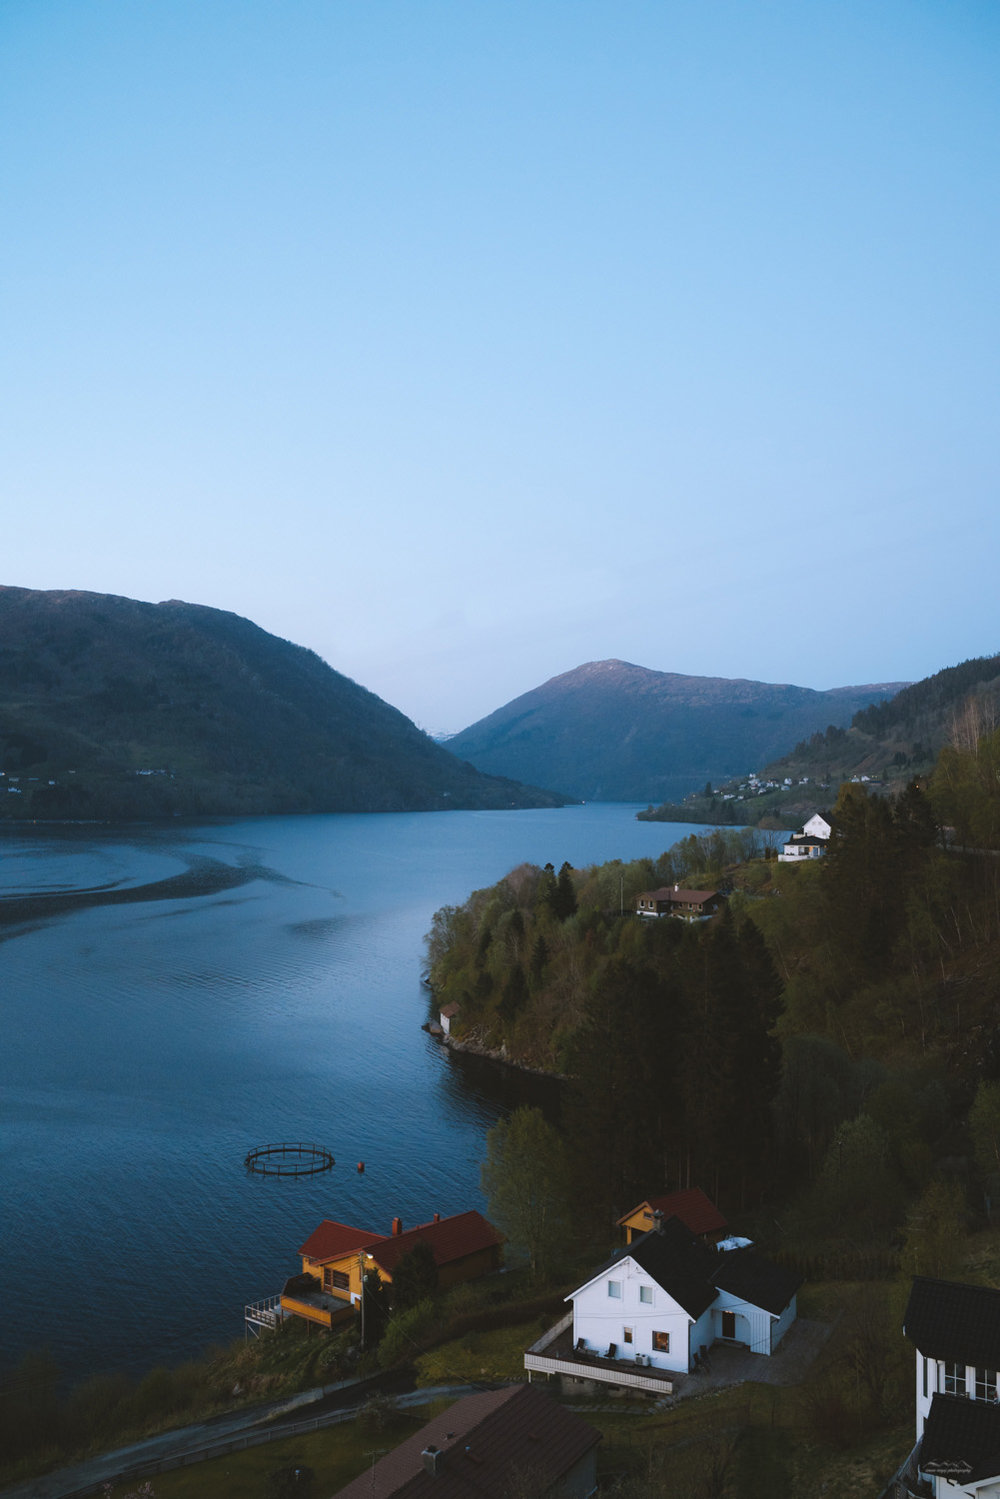 Landscape photography of a Norwegian fjord